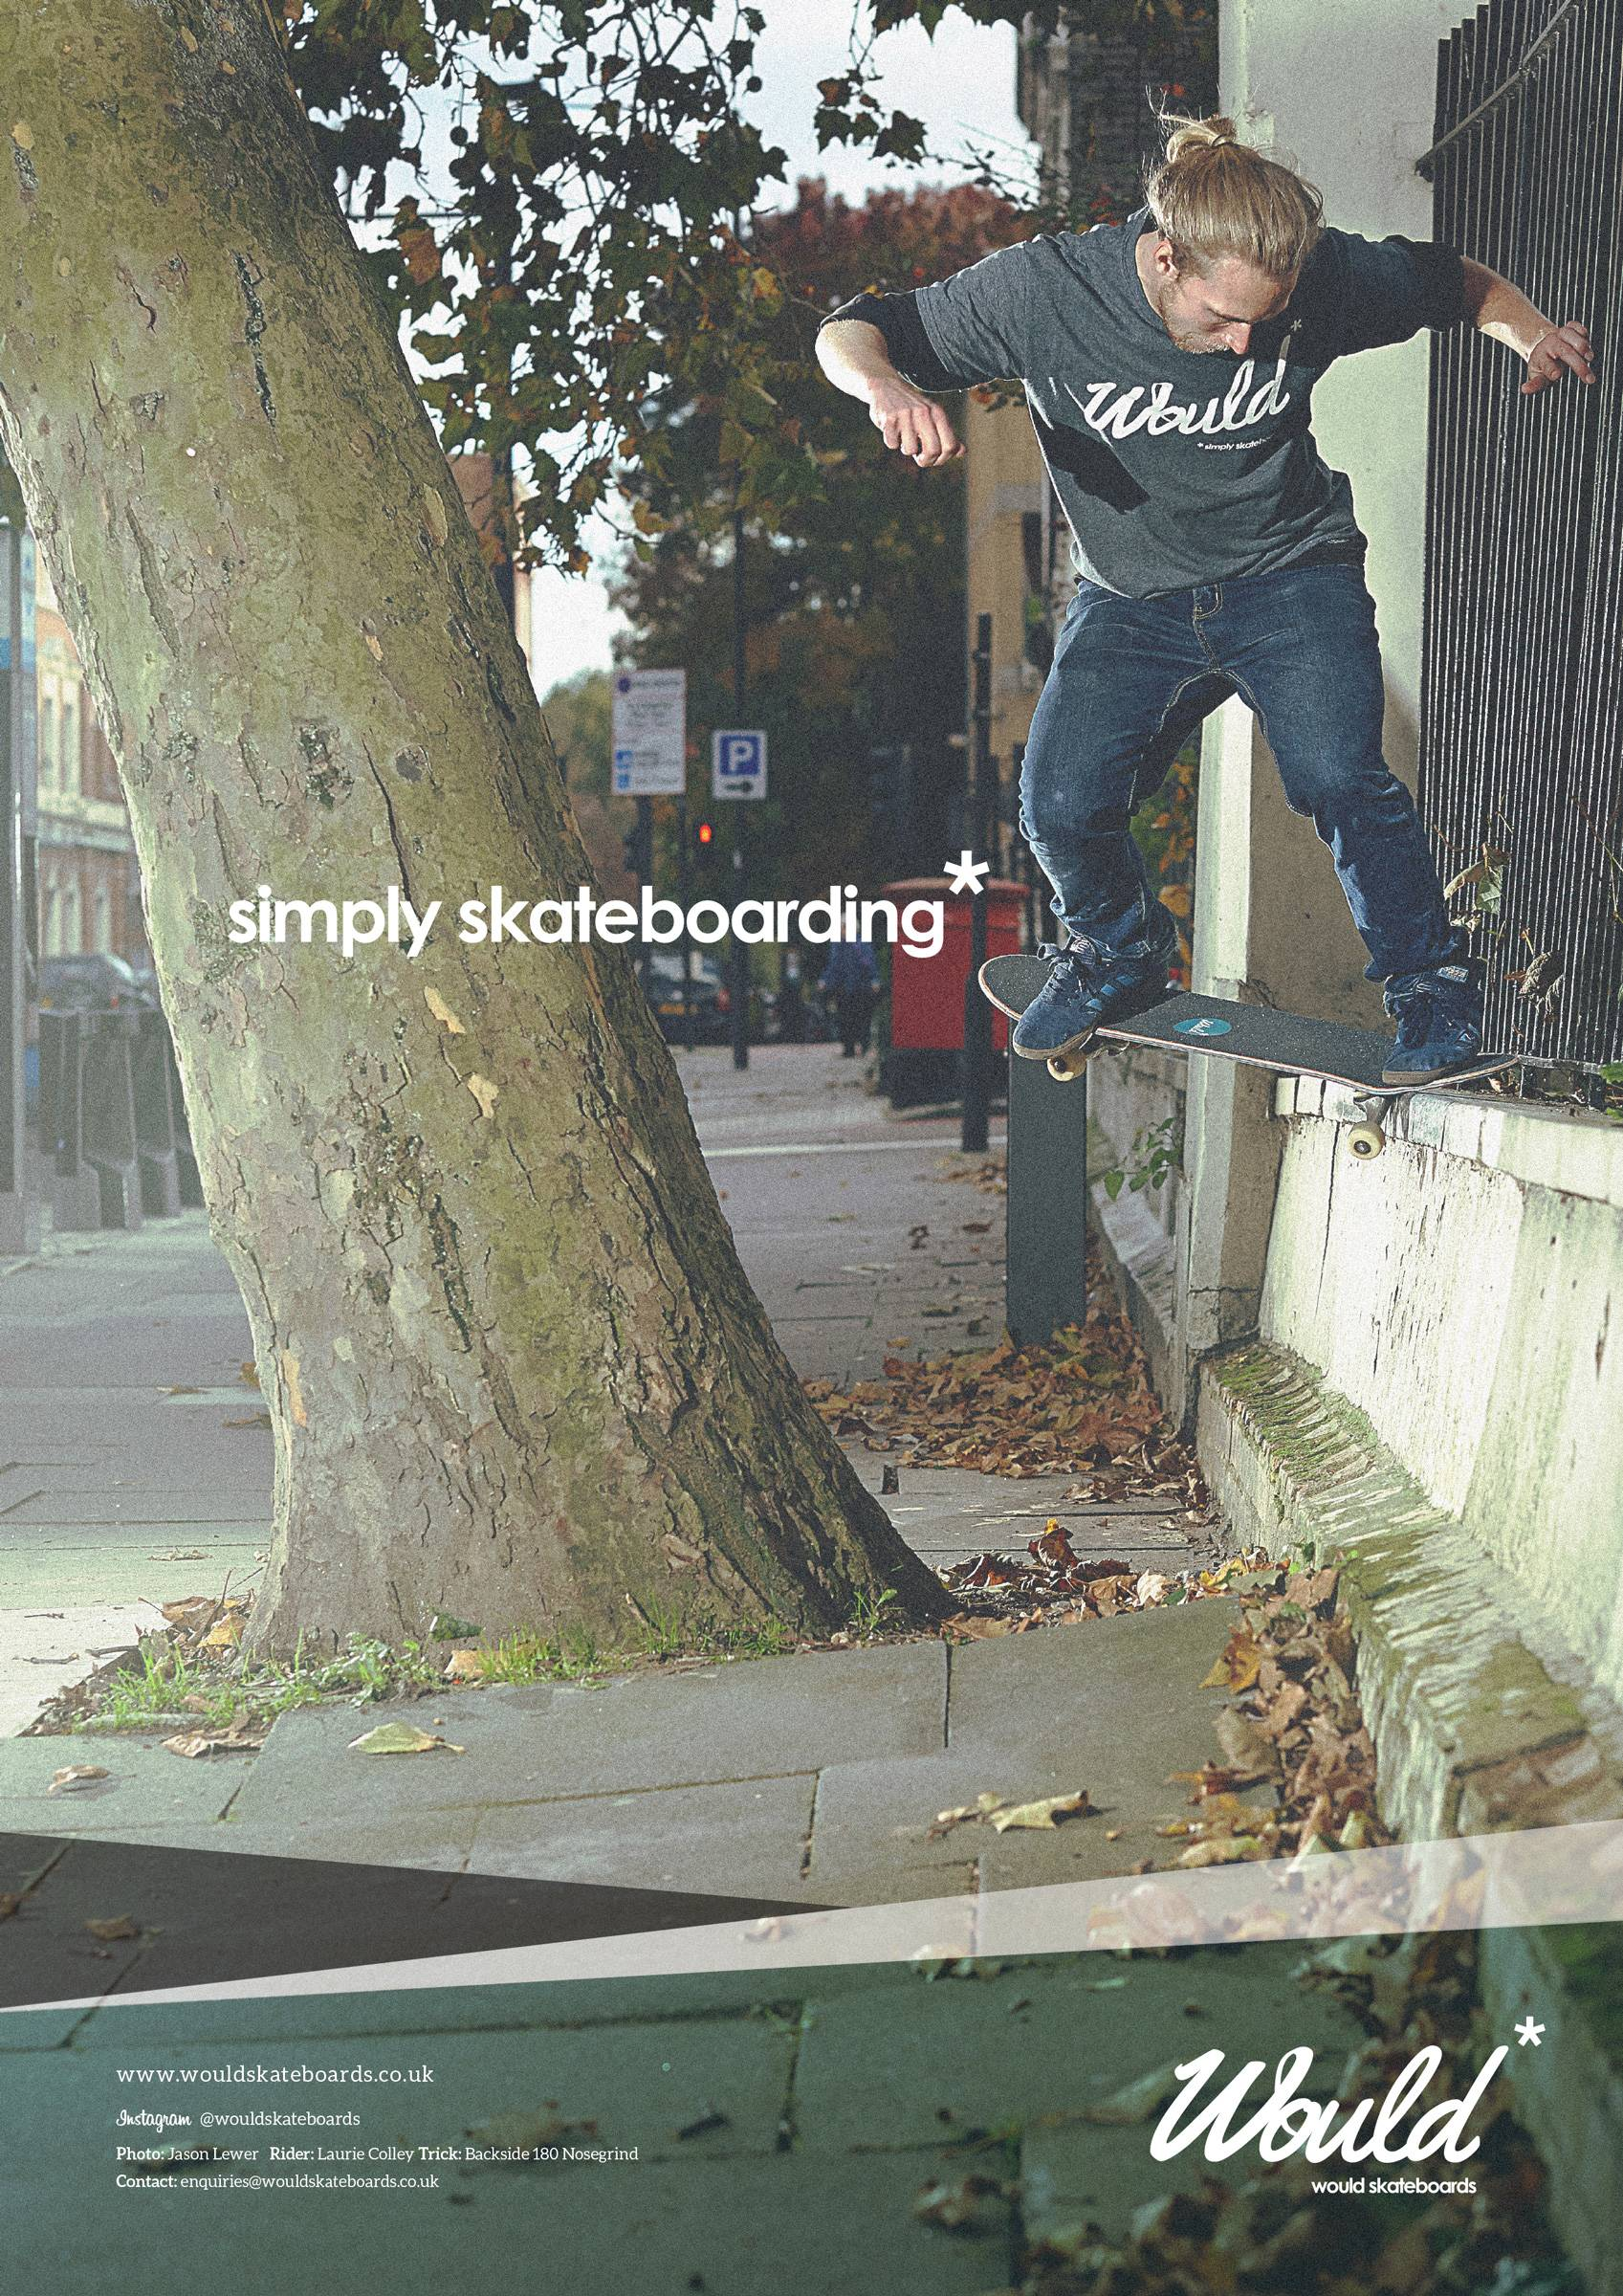 Would-Skatedboards_Laurie Colley_Skateboarding_Camden_Low res